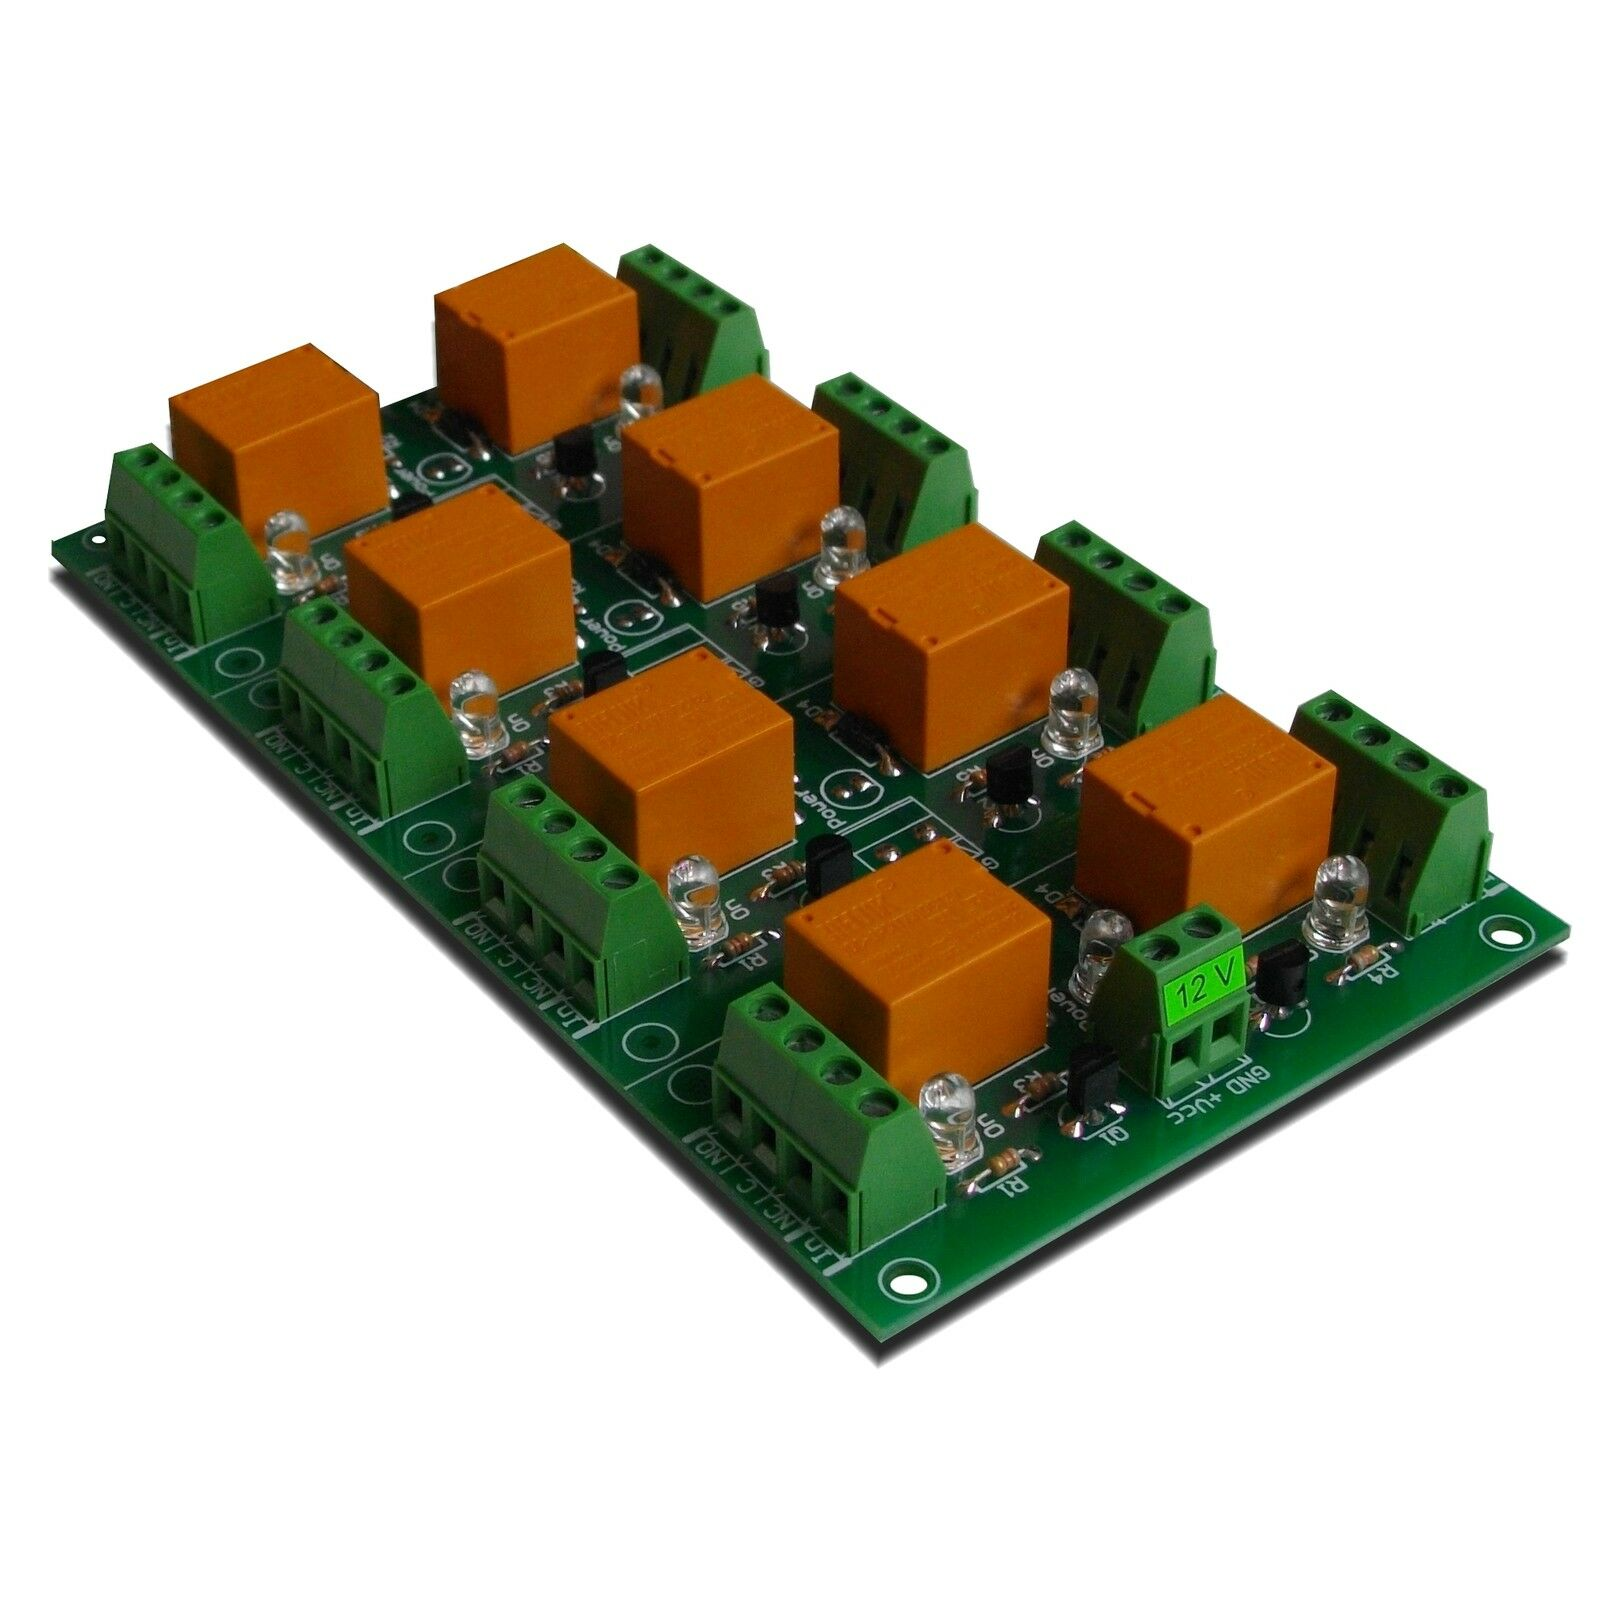 12v 8 Channel Relay Module Switch Board For Arduino Pic Arm Avr Dpdt 1 Of 4 See More